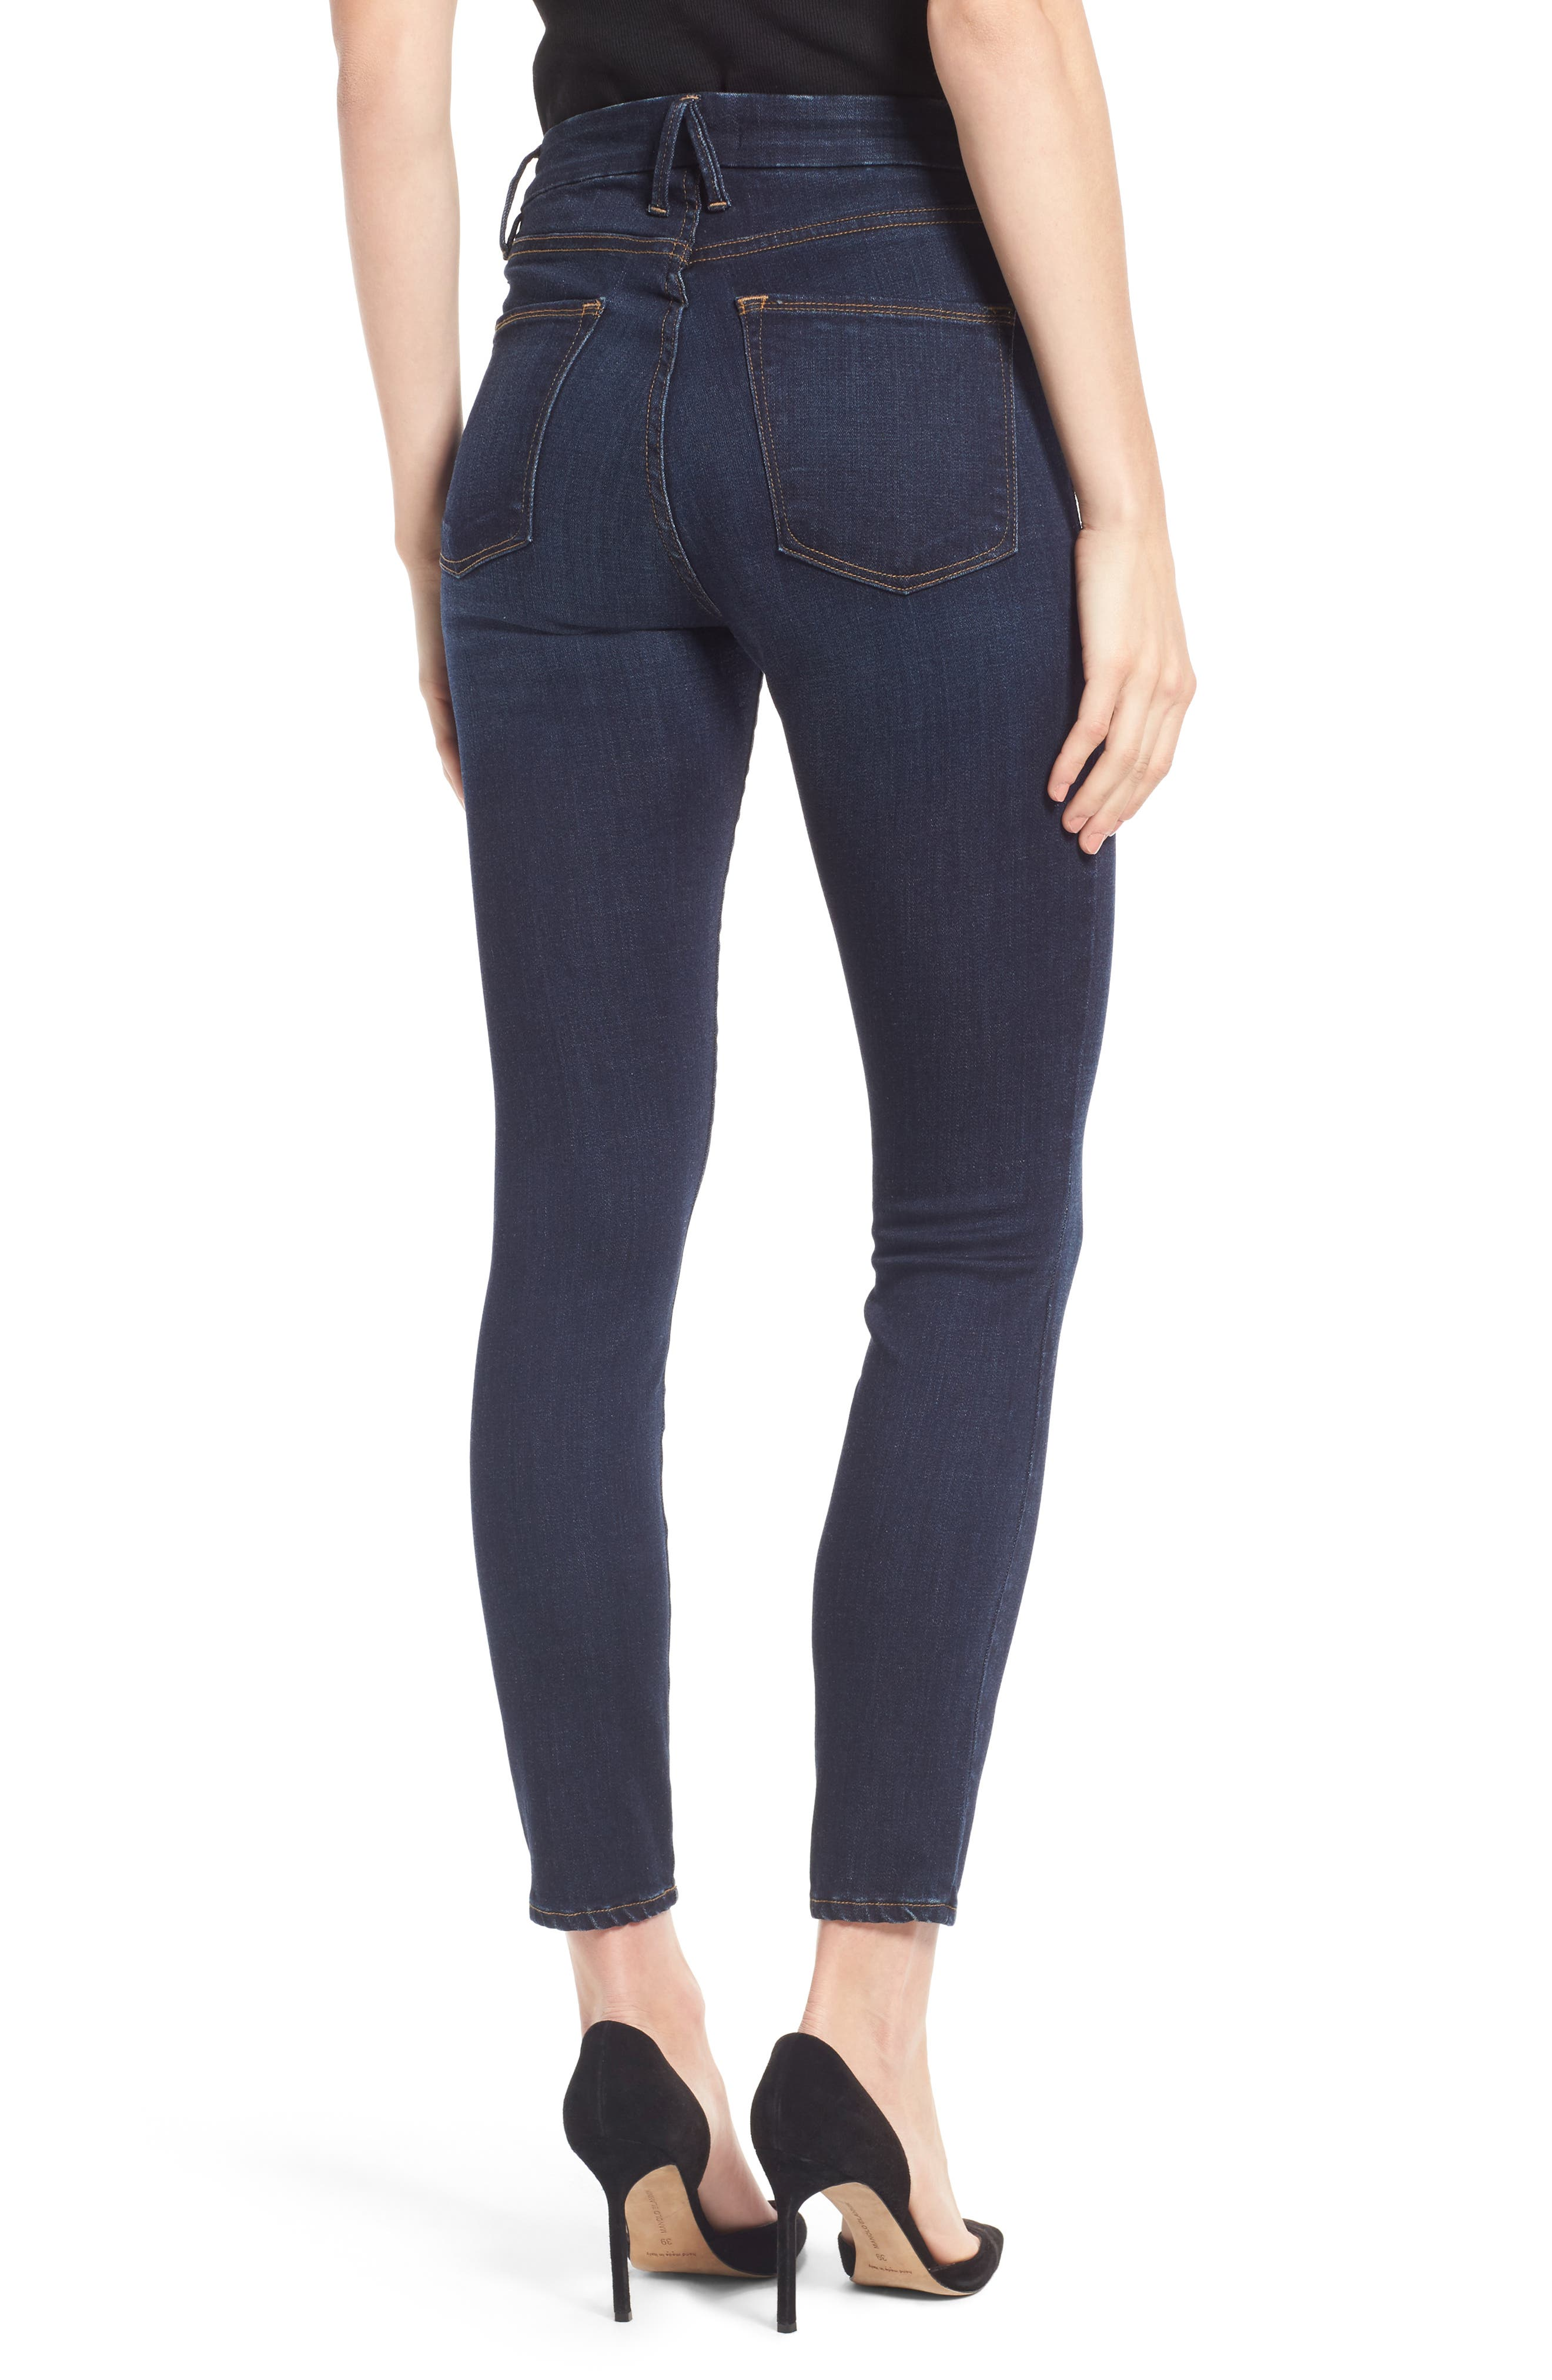 Alternate Image 2  - Good American Good Legs High Waist Ankle Skinny Jeans (Extended Sizes)